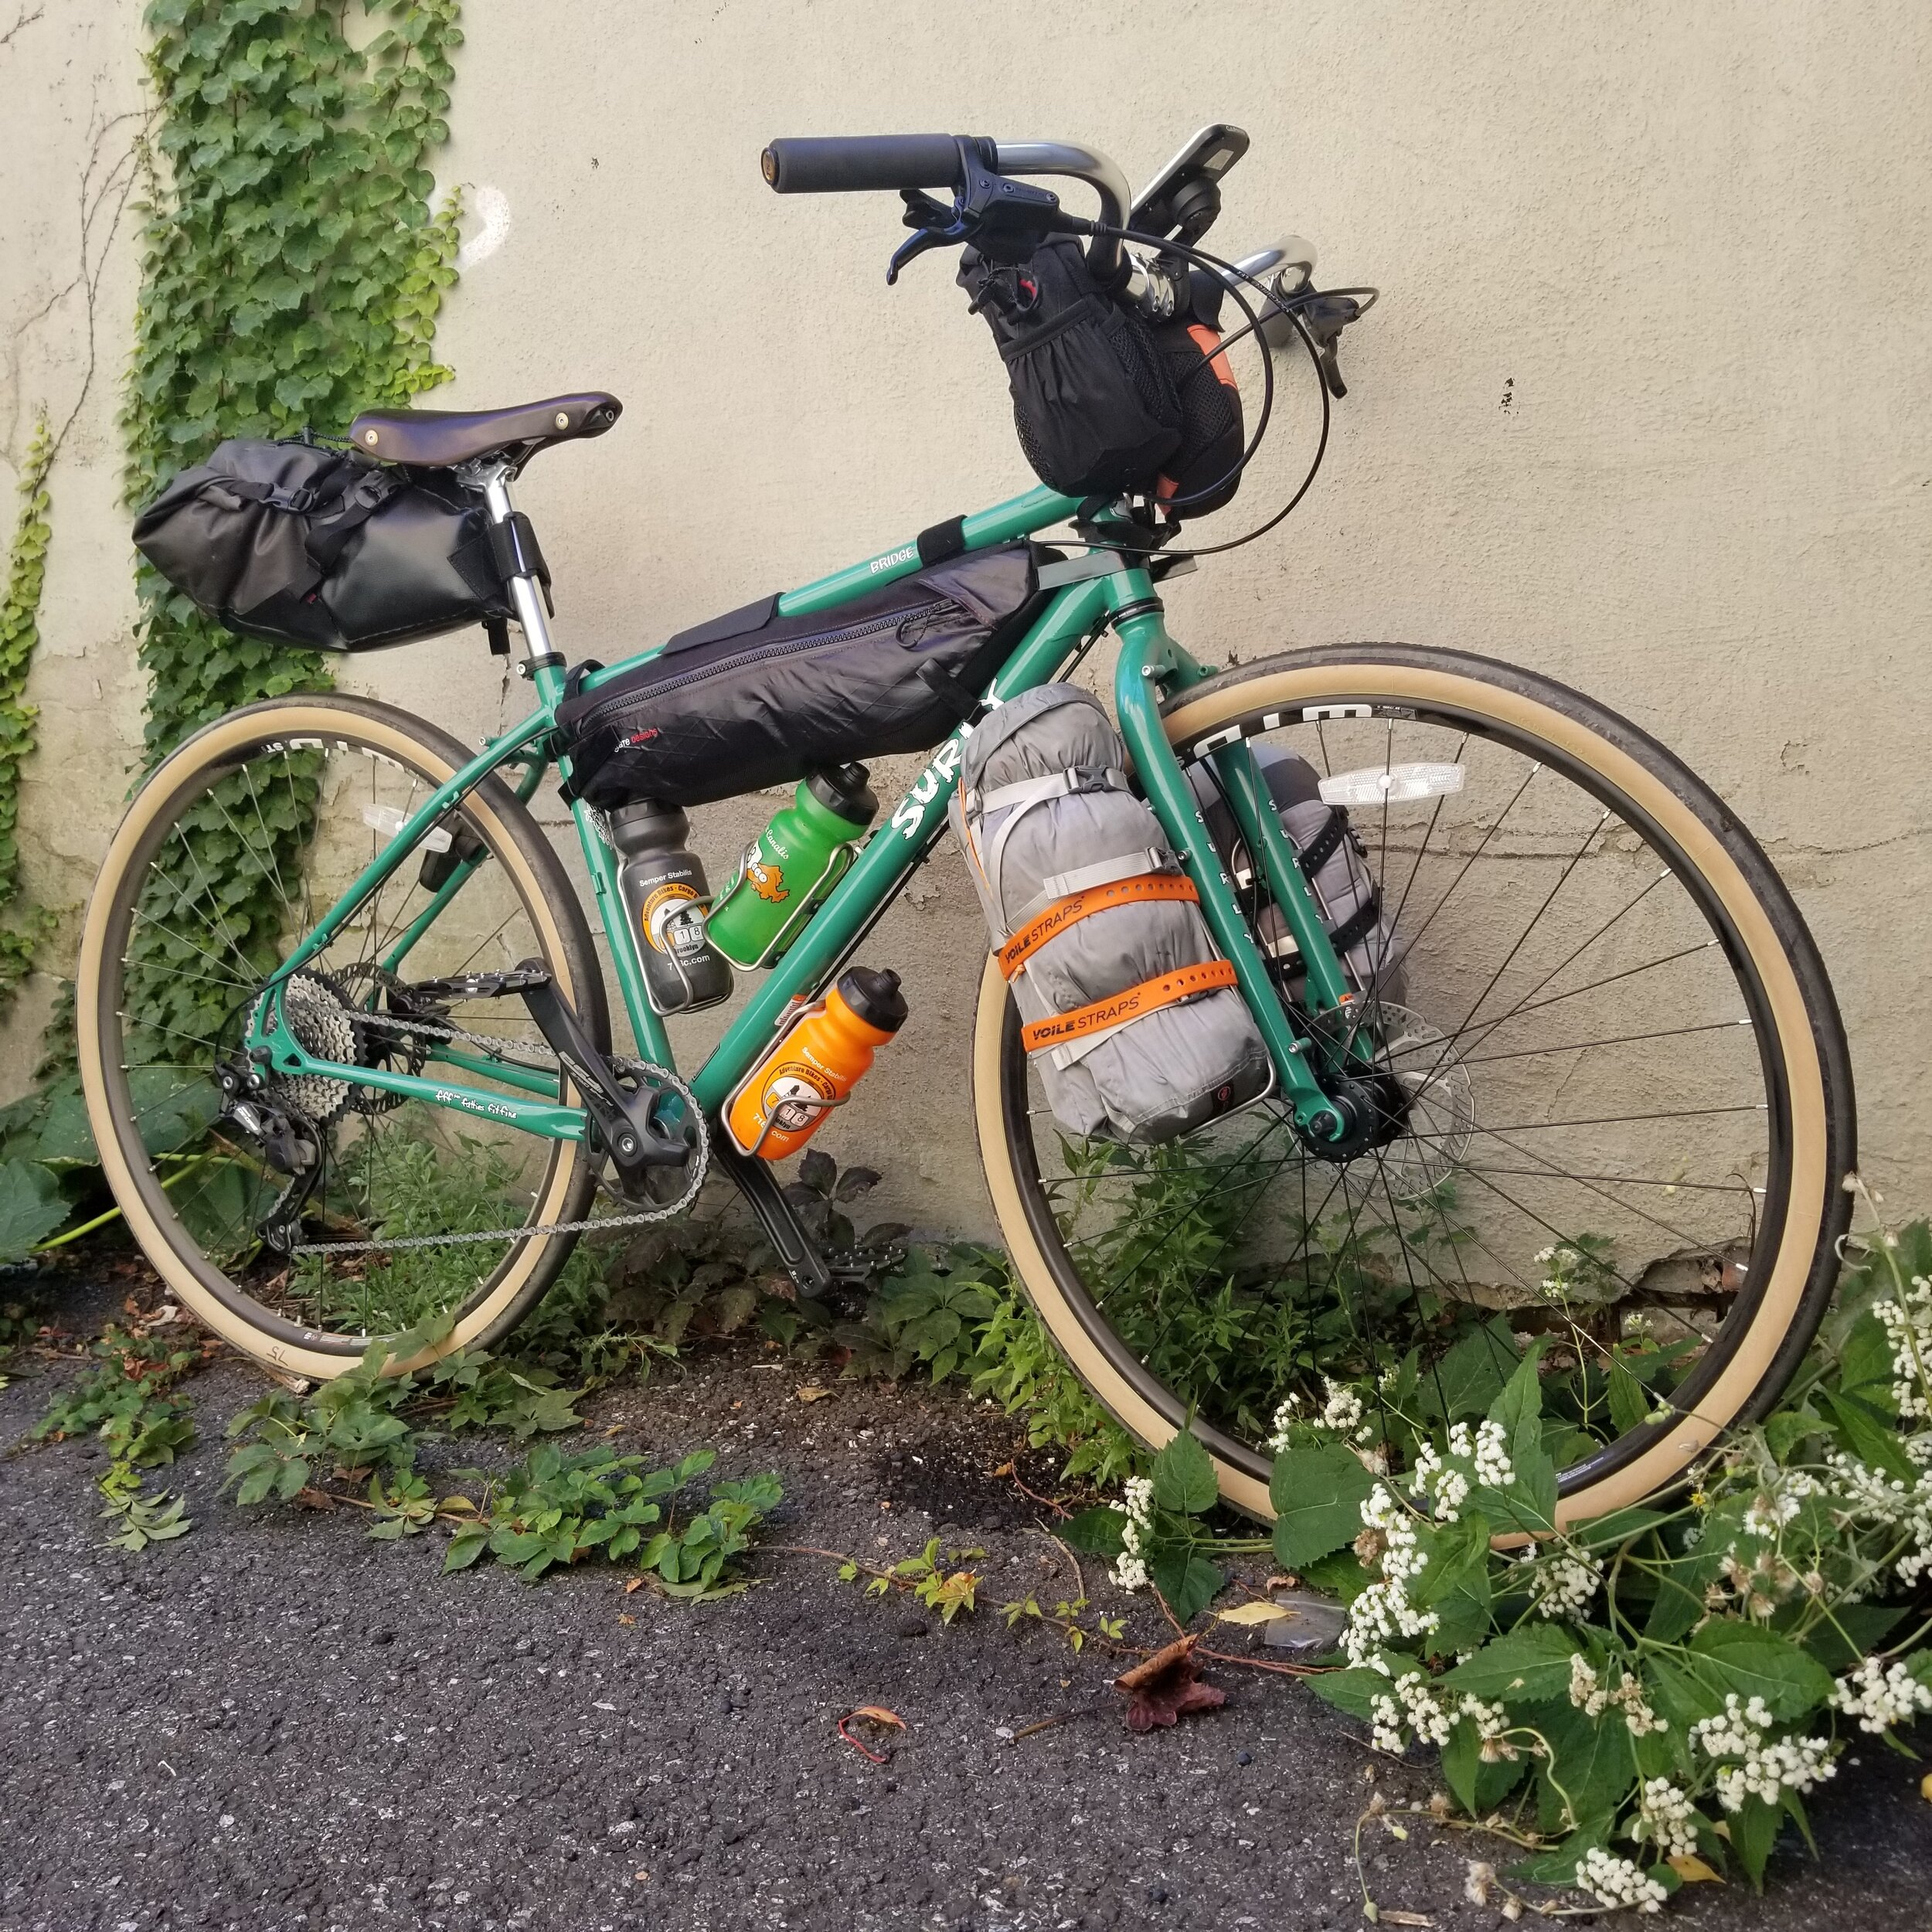 I packed up and used a new Surly Bridge Club